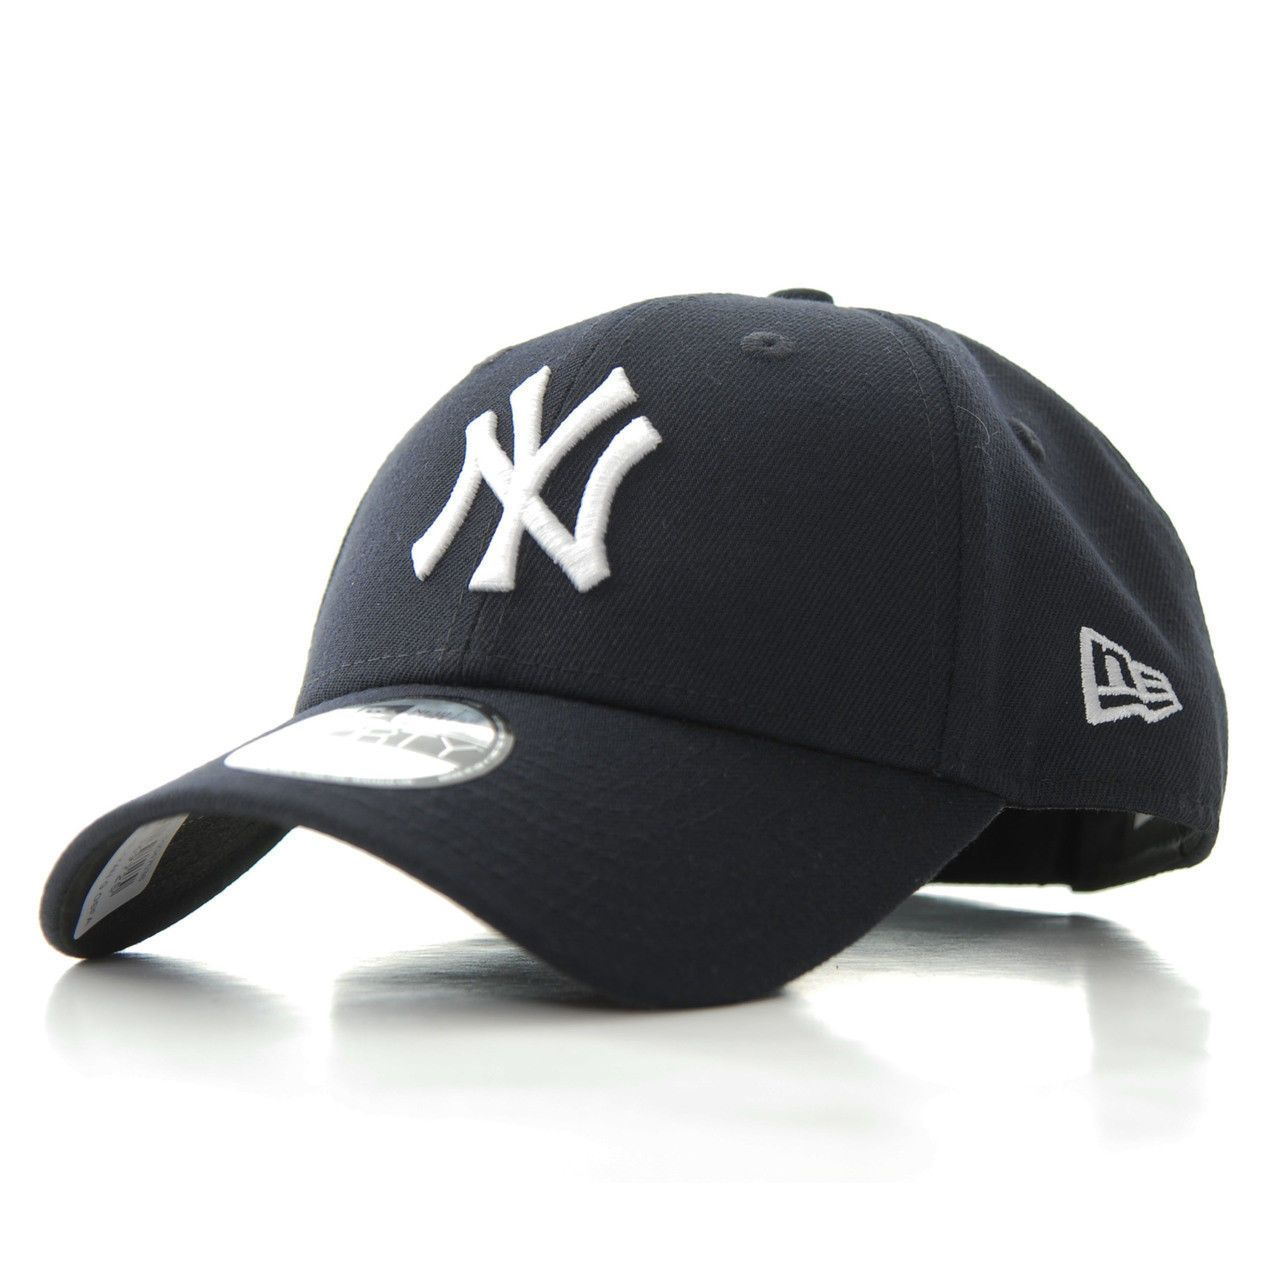 cb83e1f6d NEW ERA MENS 9FORTY BASEBALL CAP.THE LEAGUE NEW YORK YANKEES ADJUSTABLE HAT  538